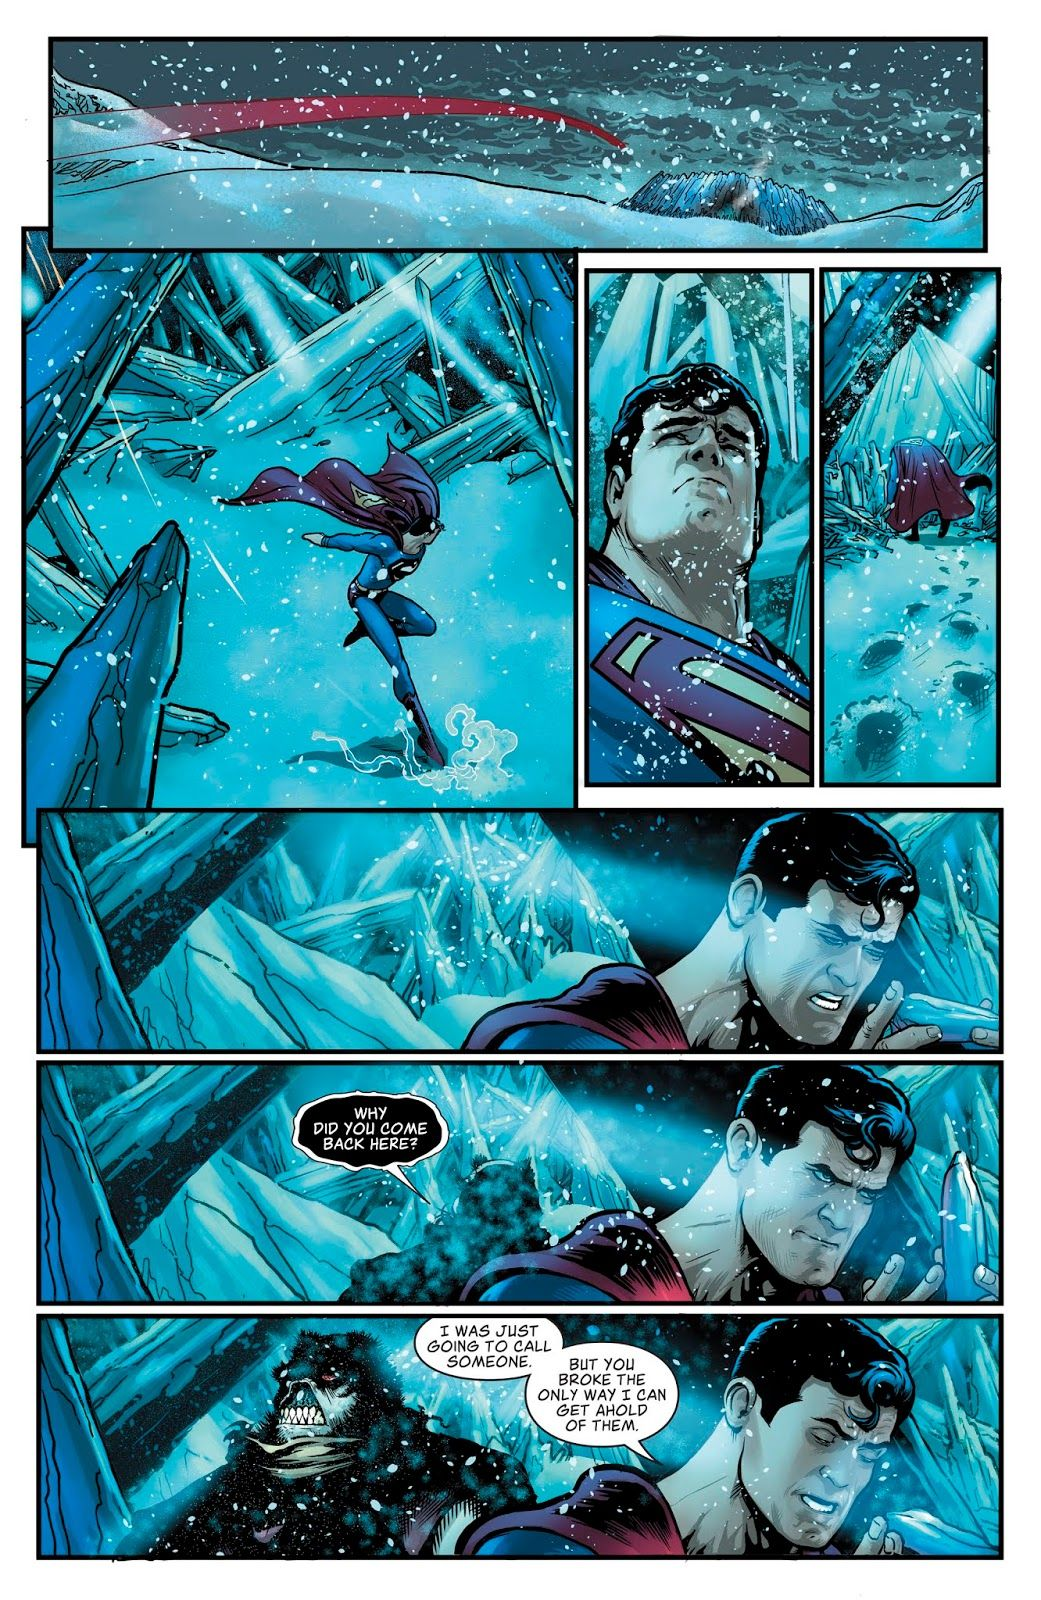 The Man Of Steel 2018 Issue 4 Read The Man Of Steel 2018 Issue 4 Comic Online In High Quality Man Of Steel Character Art Art